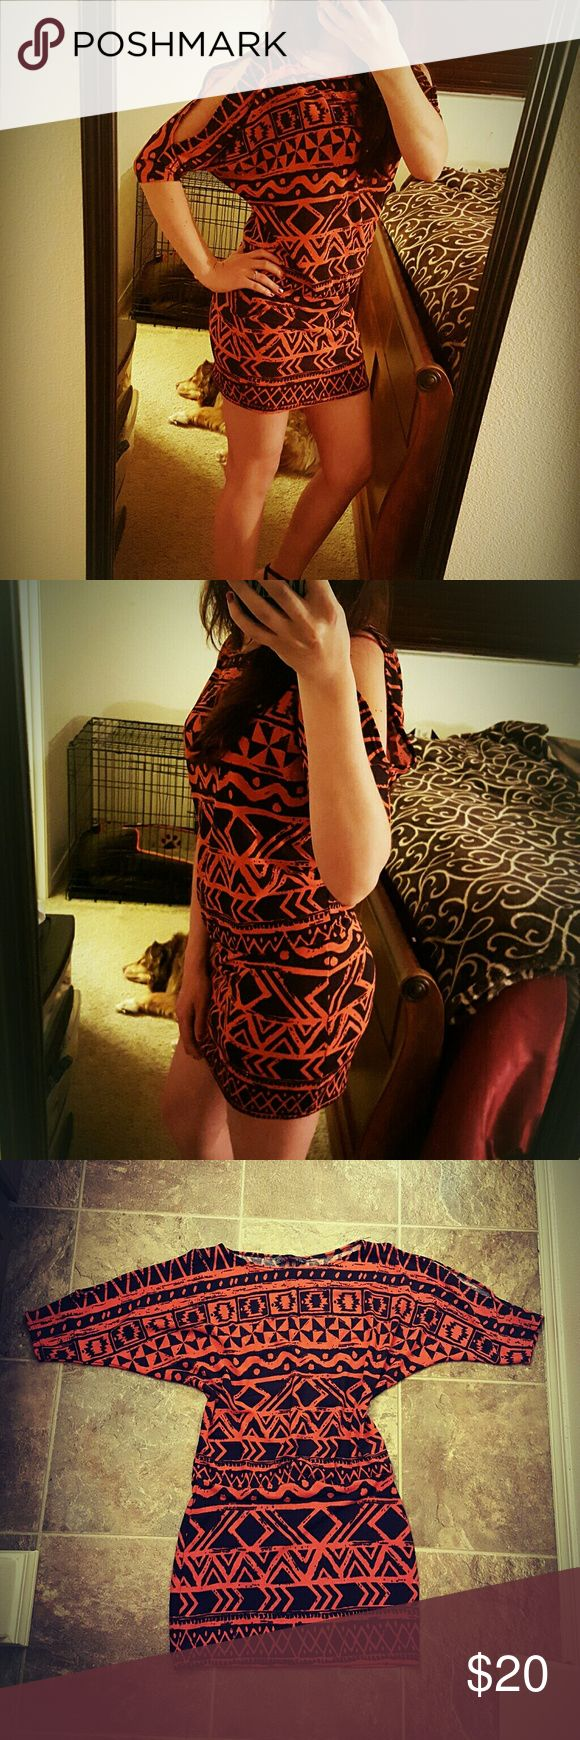 EUC Body Central XS S Dress Aztec Open Shoulder Hello everyone! Pretty dress for sale. Worn maybe once. Orange and black colors. Not super warm, but not super light either. Hugs your curves from waist down, upper portion has cold shoulders and dolman sleeves. Boat neck. Really pretty, but I just never wear it. See pics for care instructions and material.  Fyi I do have a dog but she is not allowed near clothes. Reasonable offers welcome! Sorry no trades. Body Central Dresses Mini